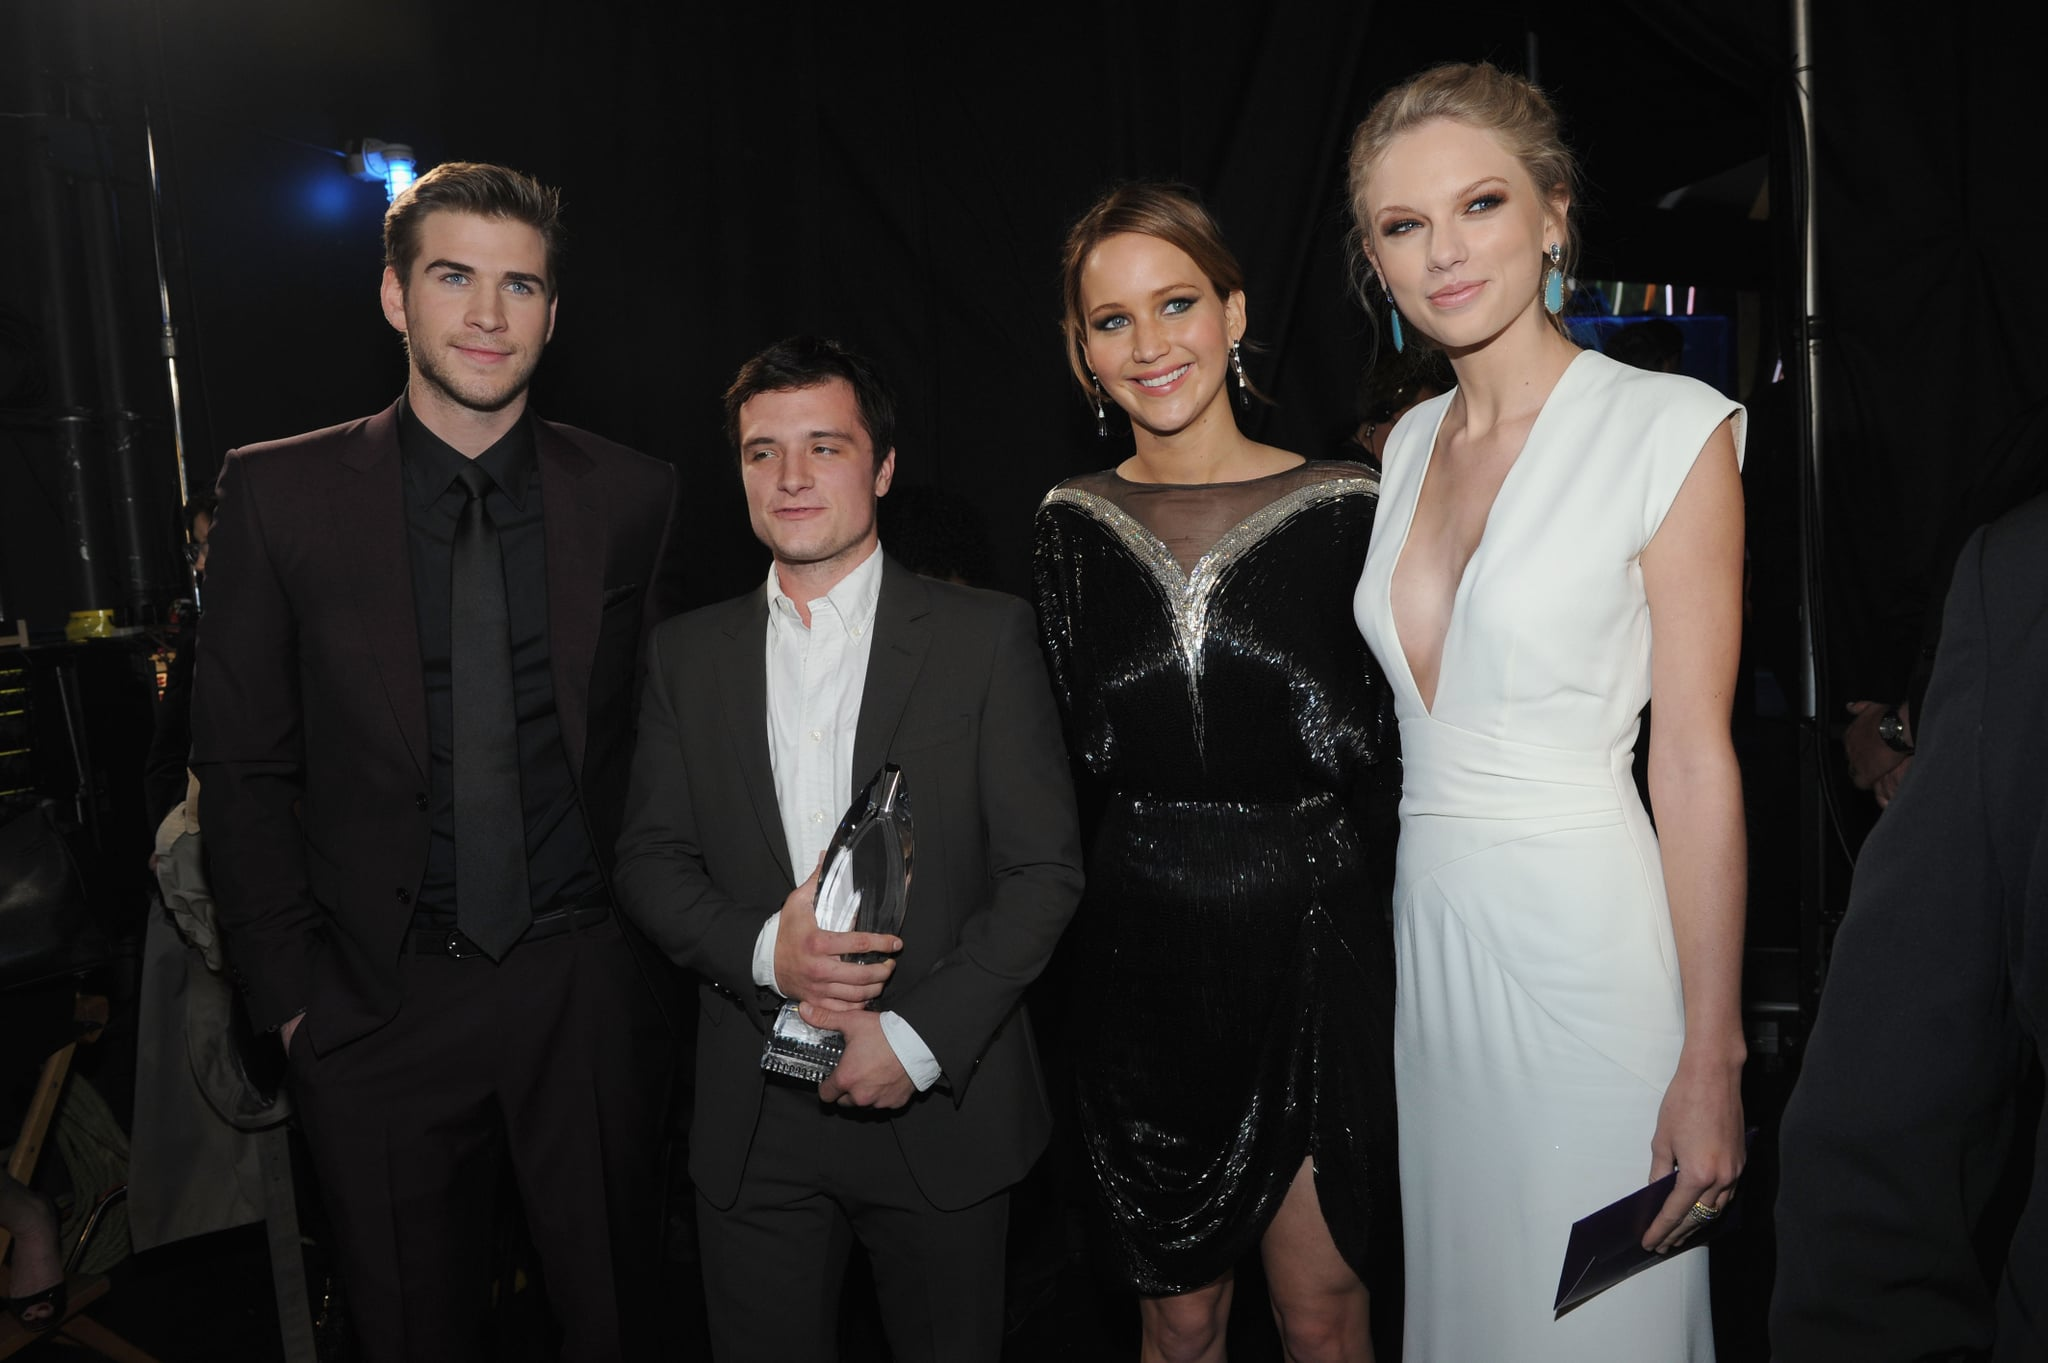 At the People's Choice Awards, the Hunger Games cast took a picture with Taylor Swift.